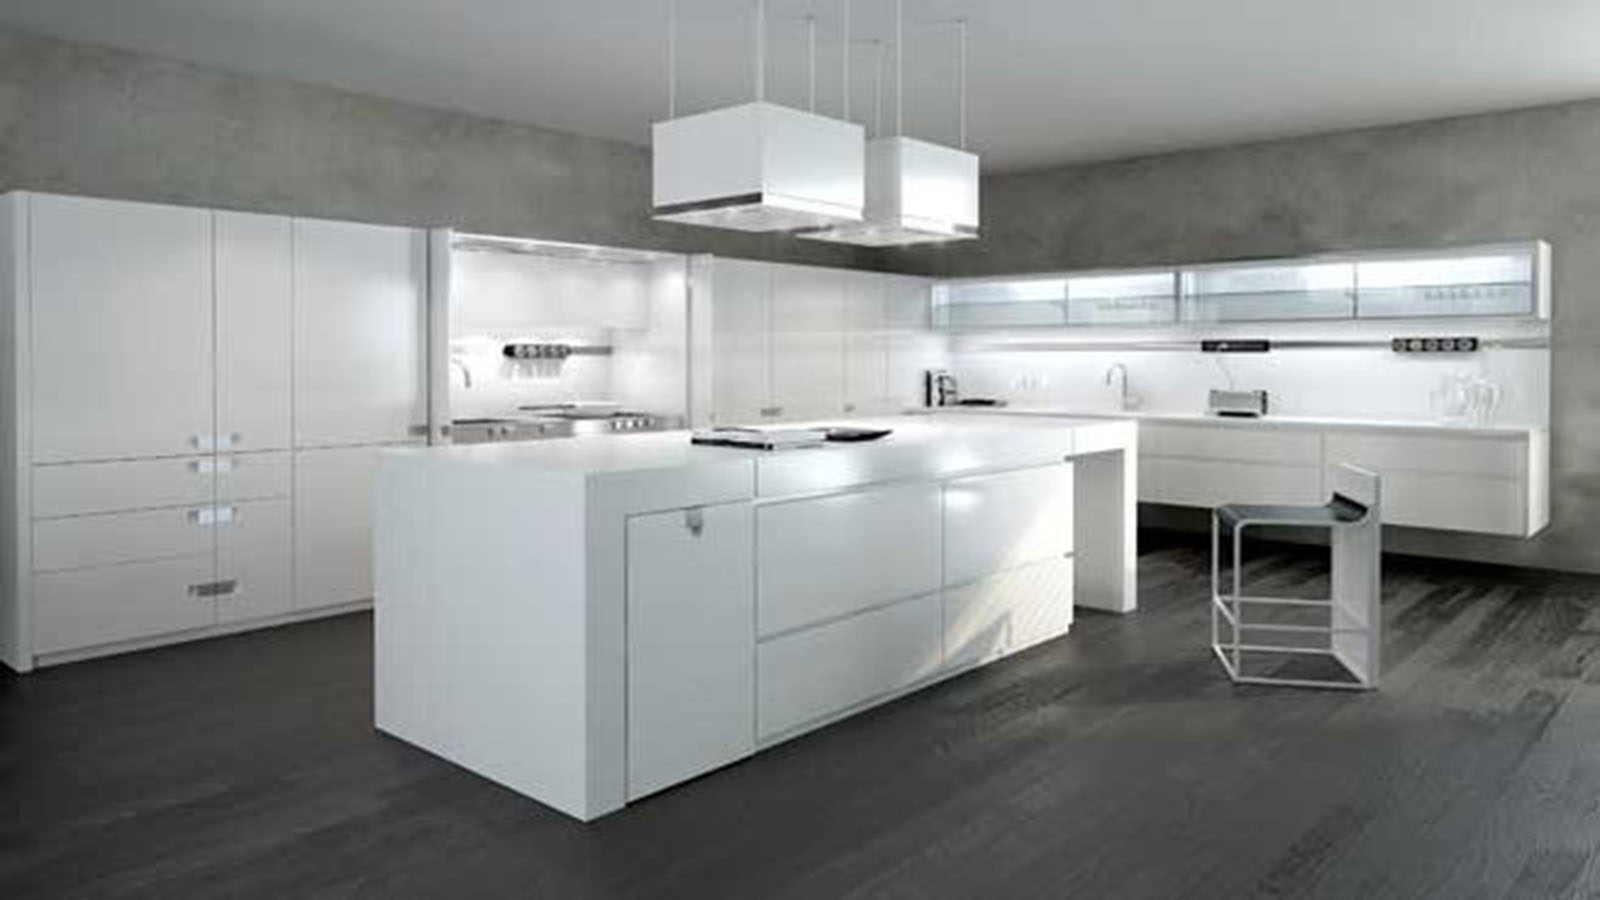 plan de travail corian crdit corian dupont with plan de travail cuisine corian. Black Bedroom Furniture Sets. Home Design Ideas